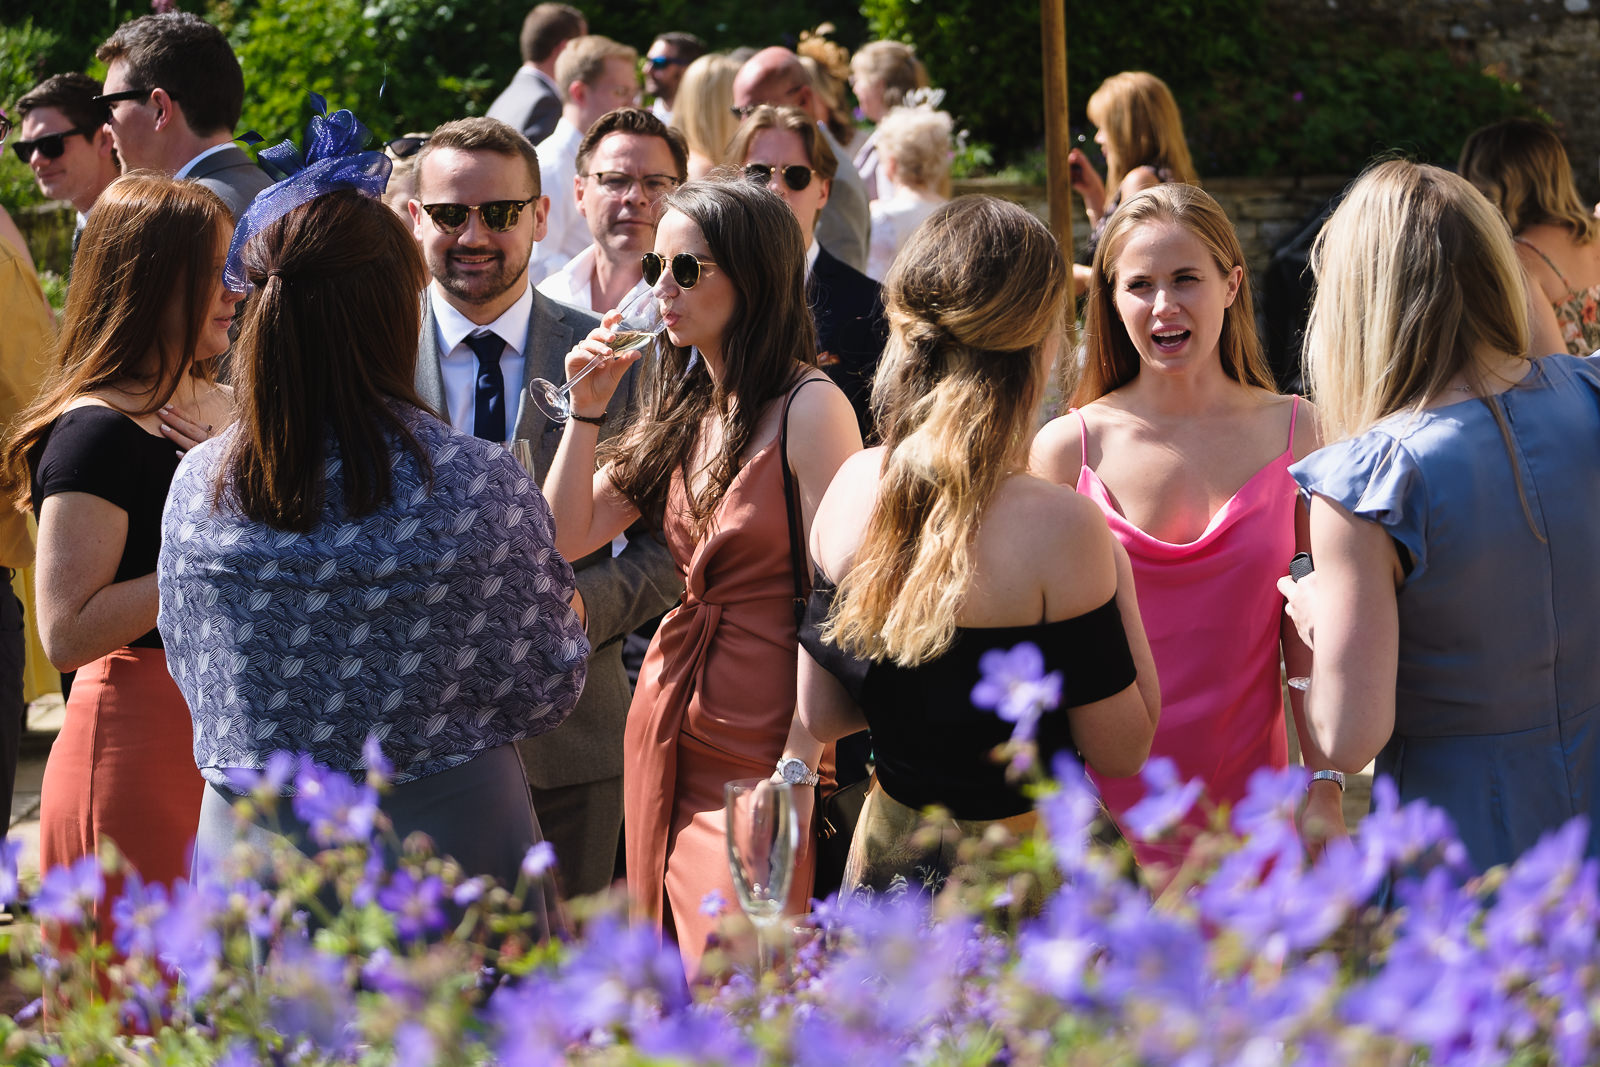 Wedding photography with guests enjoying conversation and drinks on hot English summer day at English country wedding